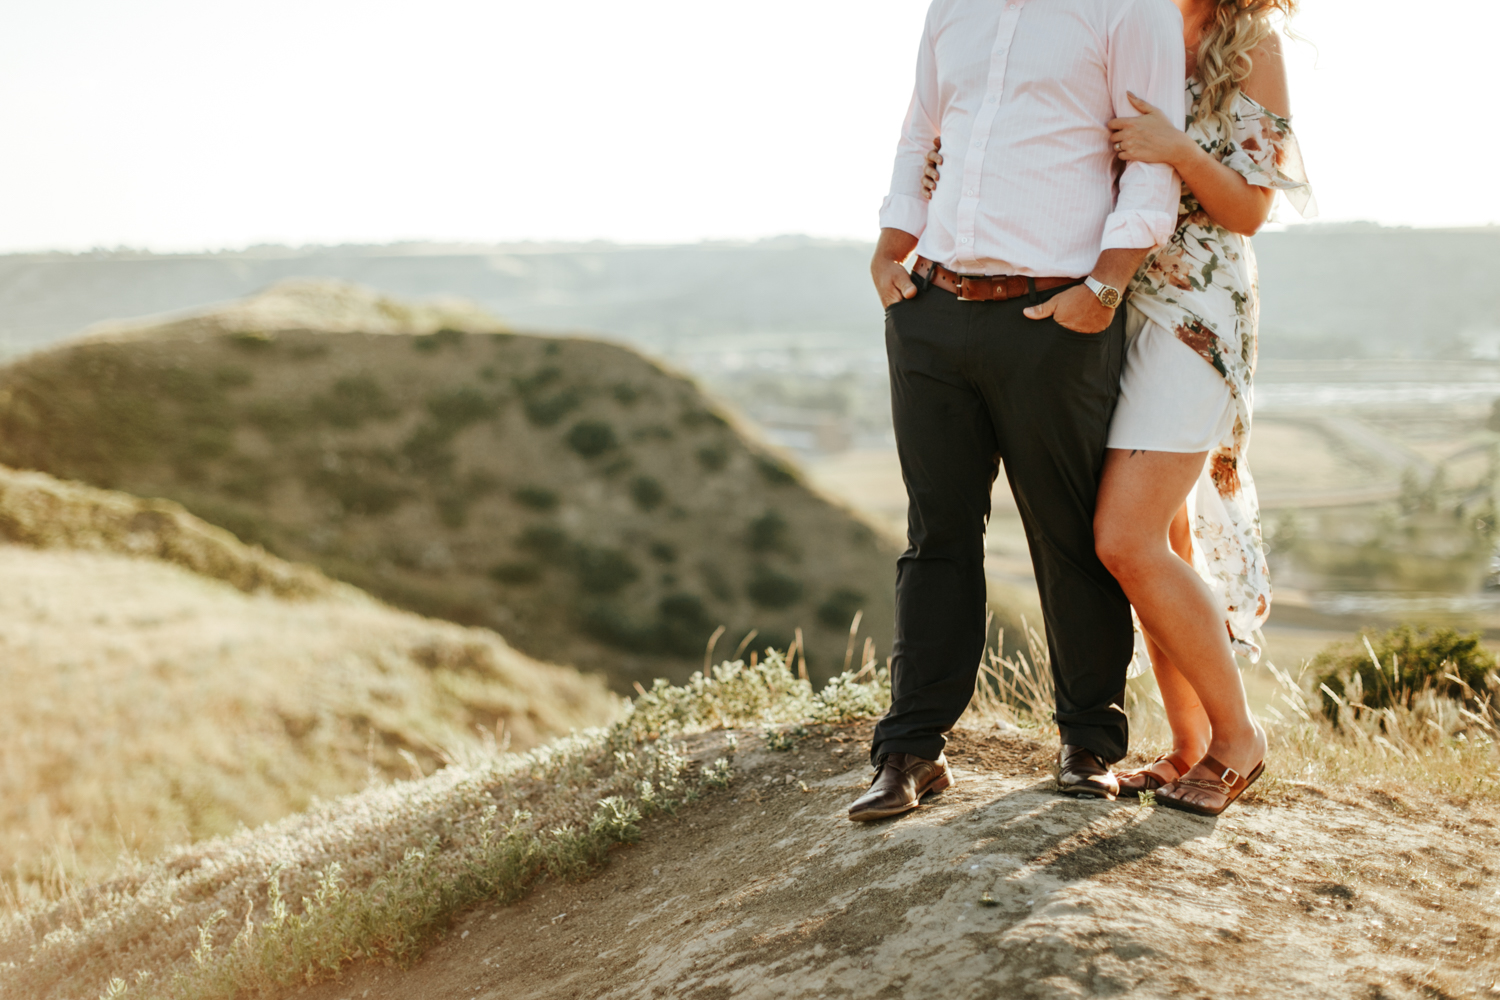 lethbridge-wedding-photographer-love-and-be-loved-photography-katie-kelli-engagement-picture-image-photo-20.jpg